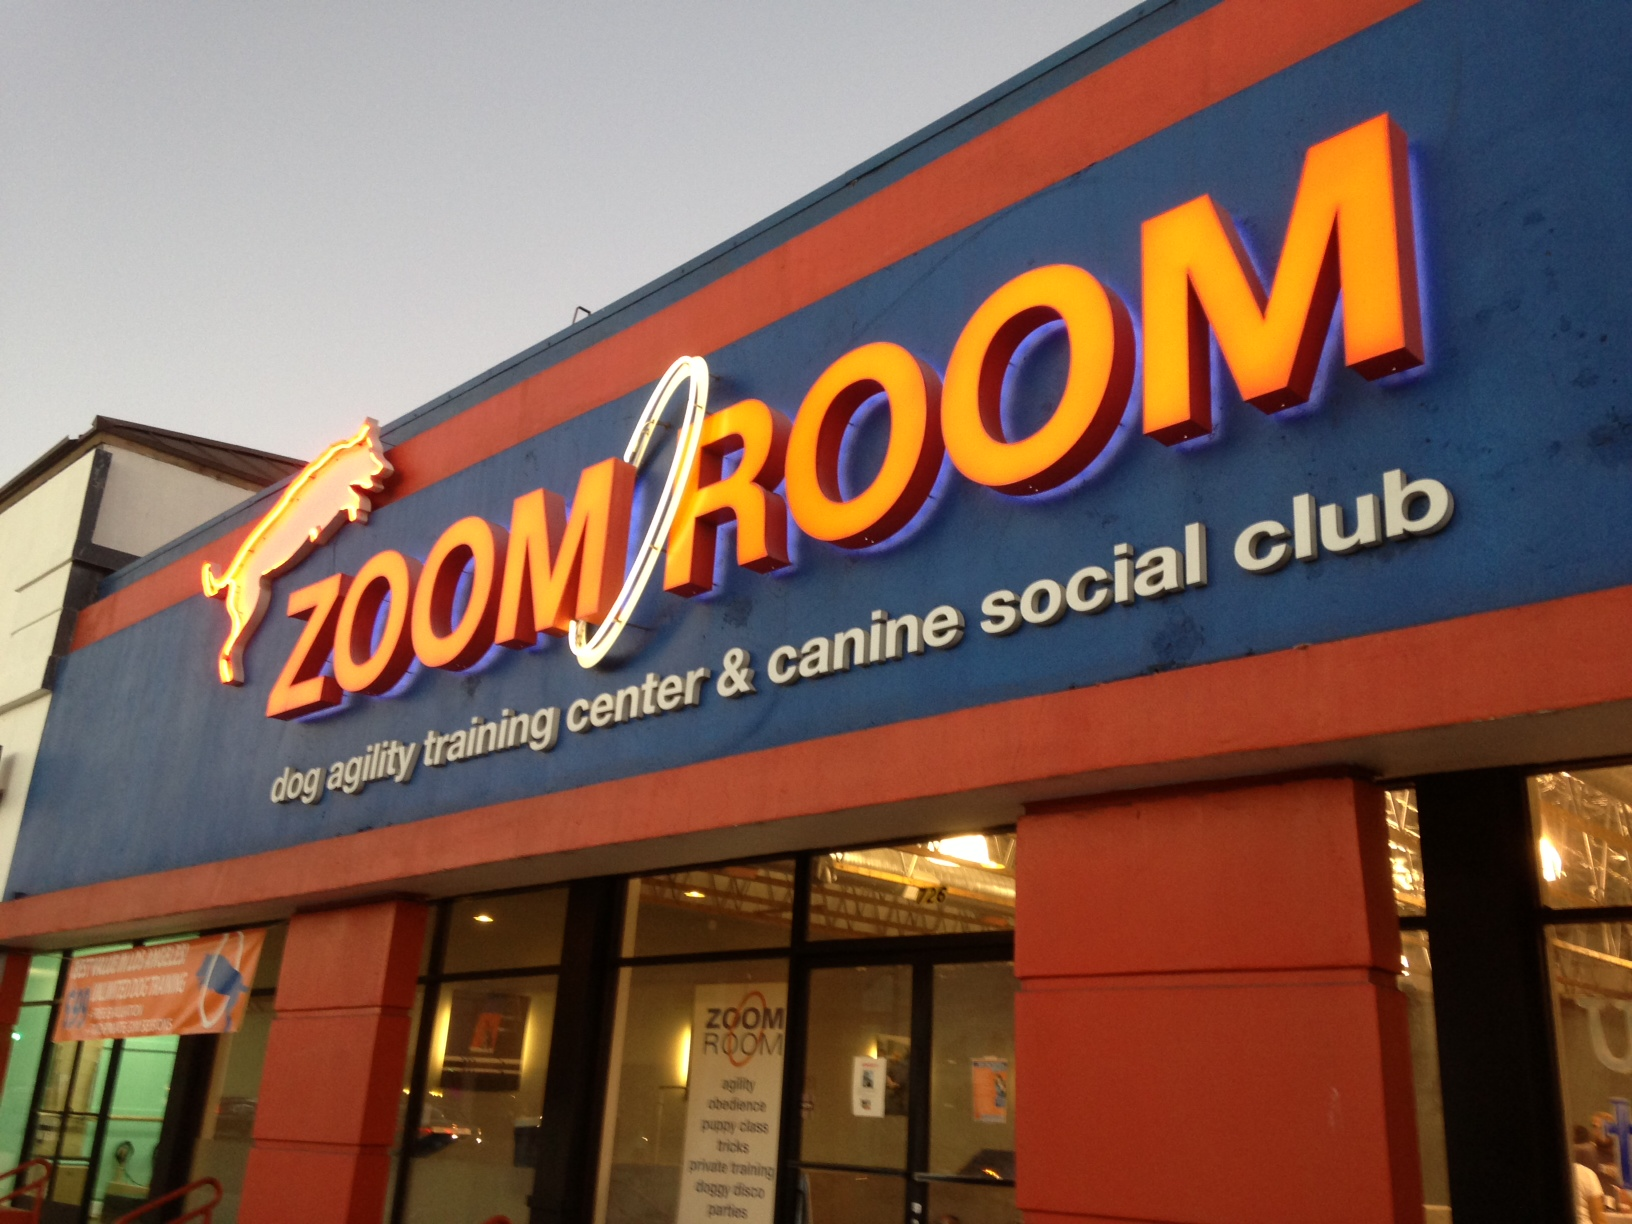 Zoom Room - Hollywood - Hollywood - Los Angeles